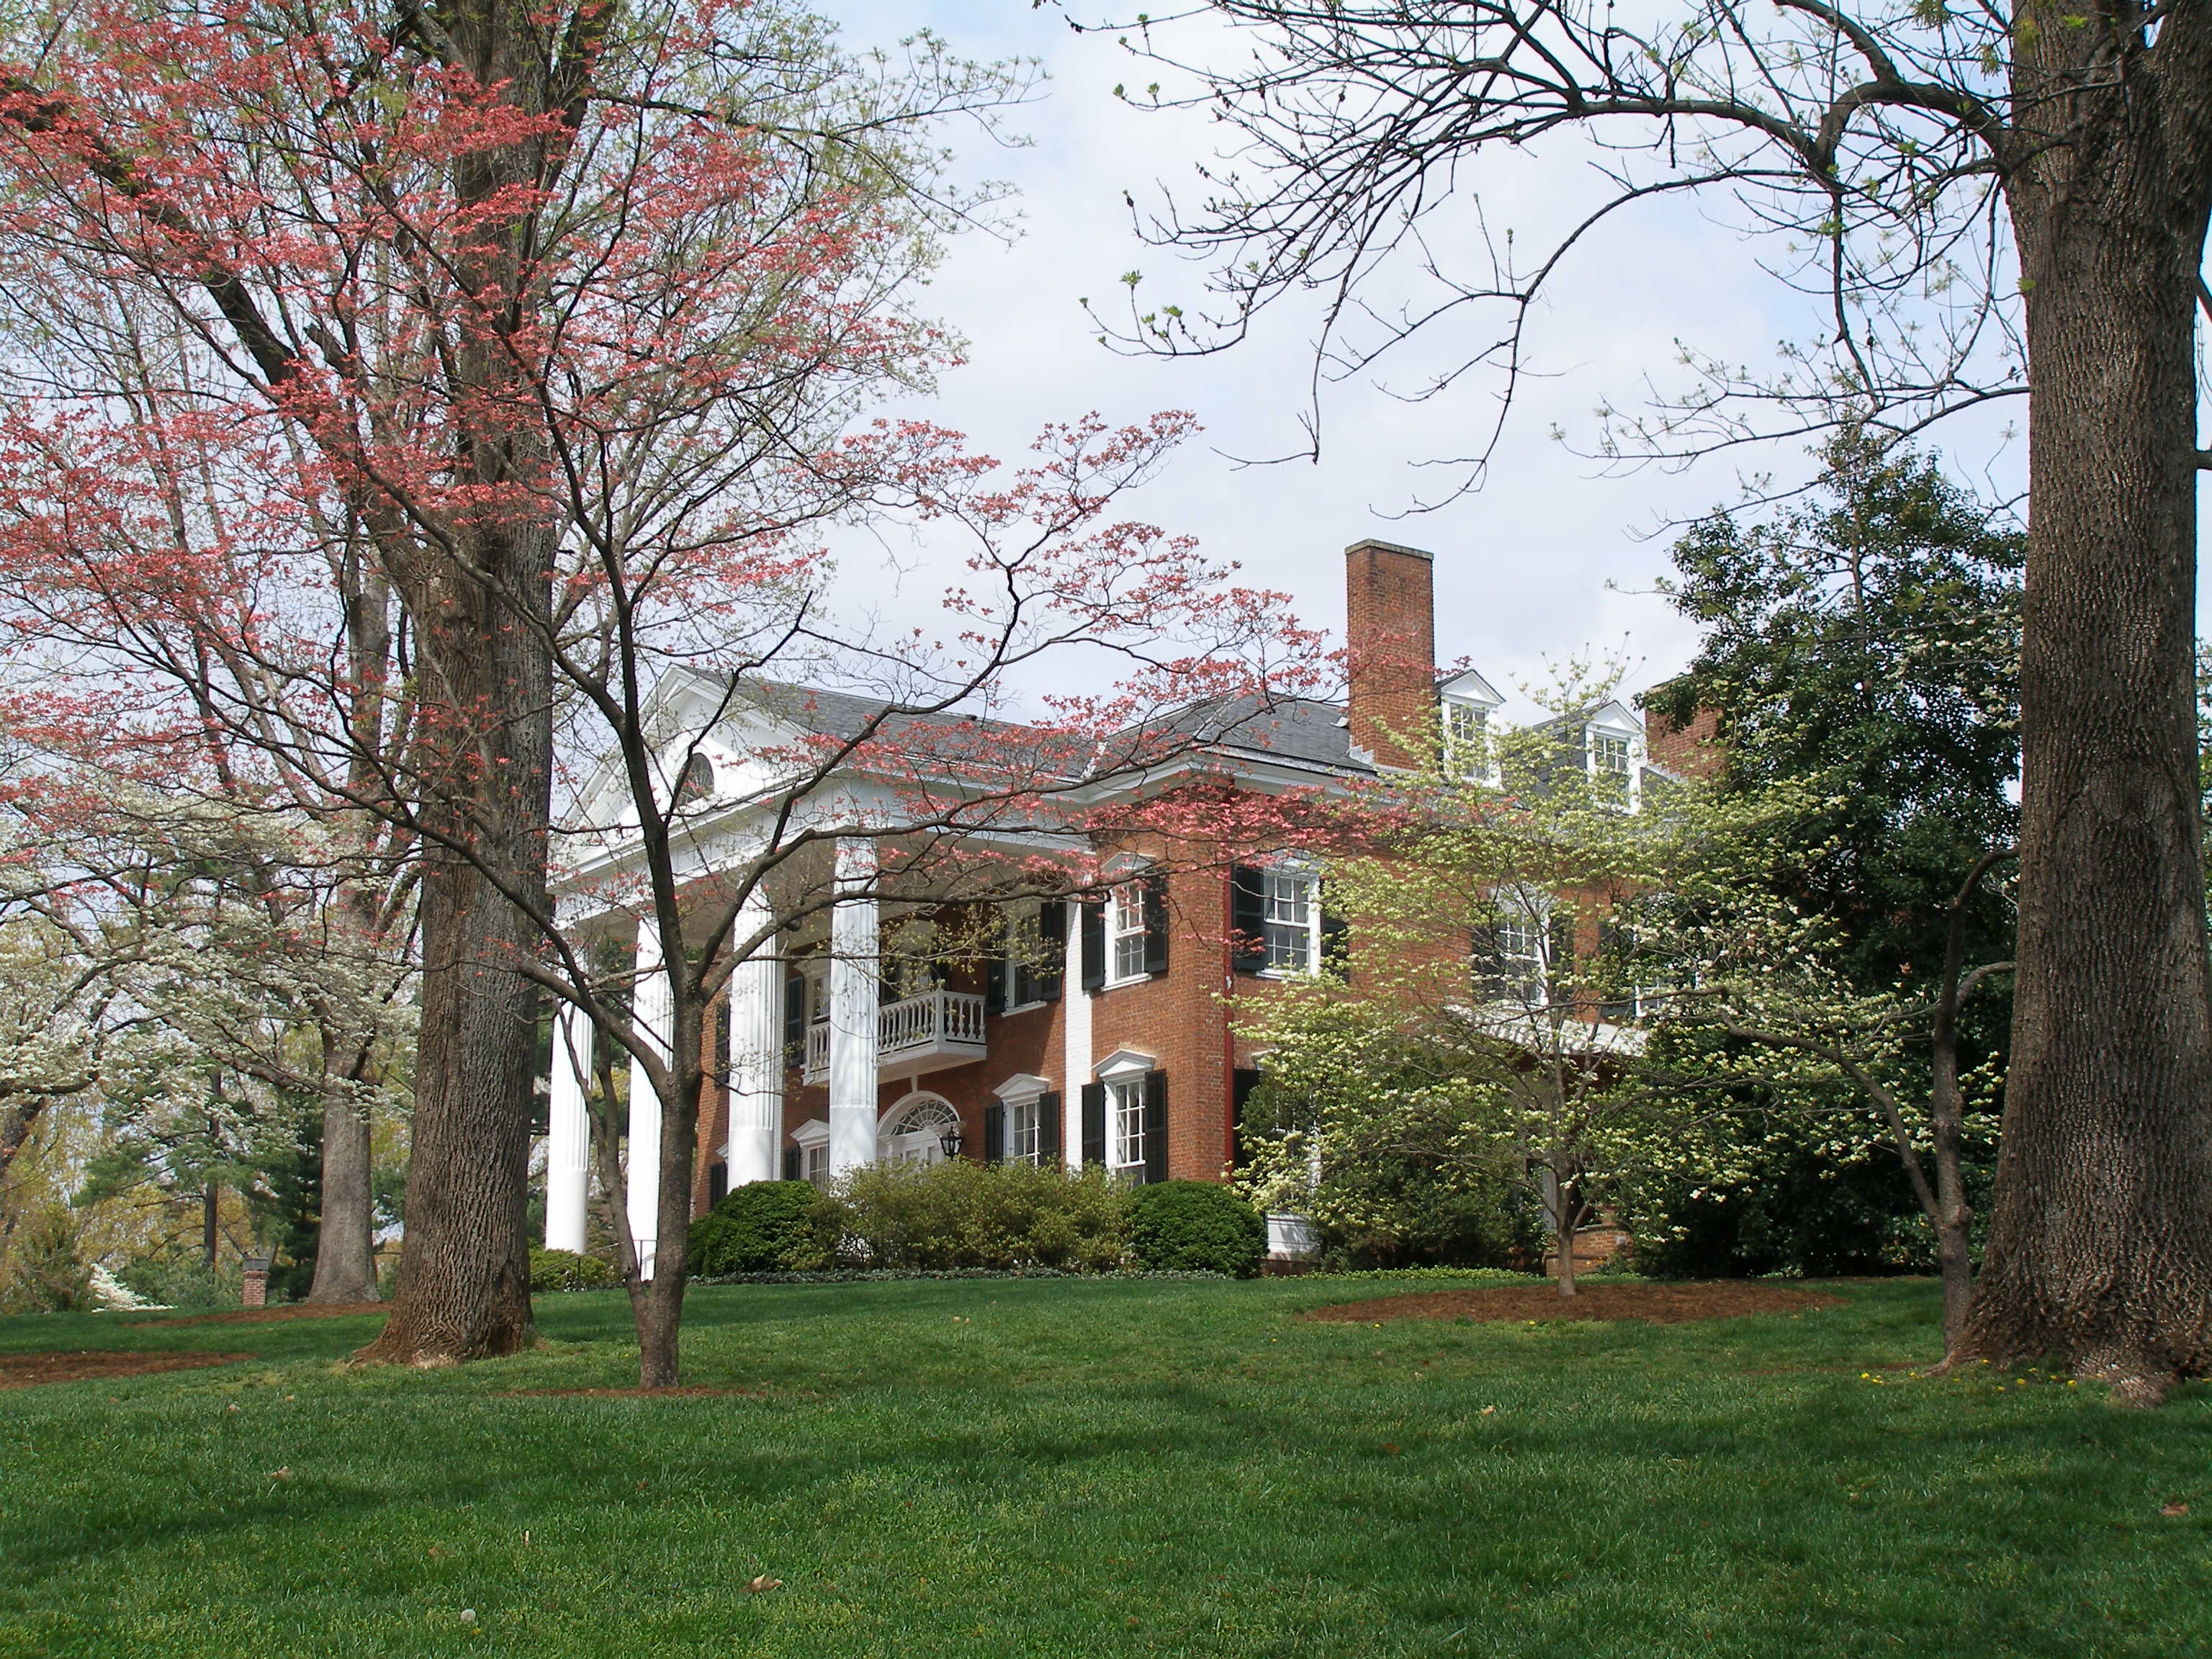 Carr's Hill / University of Virginia President's House